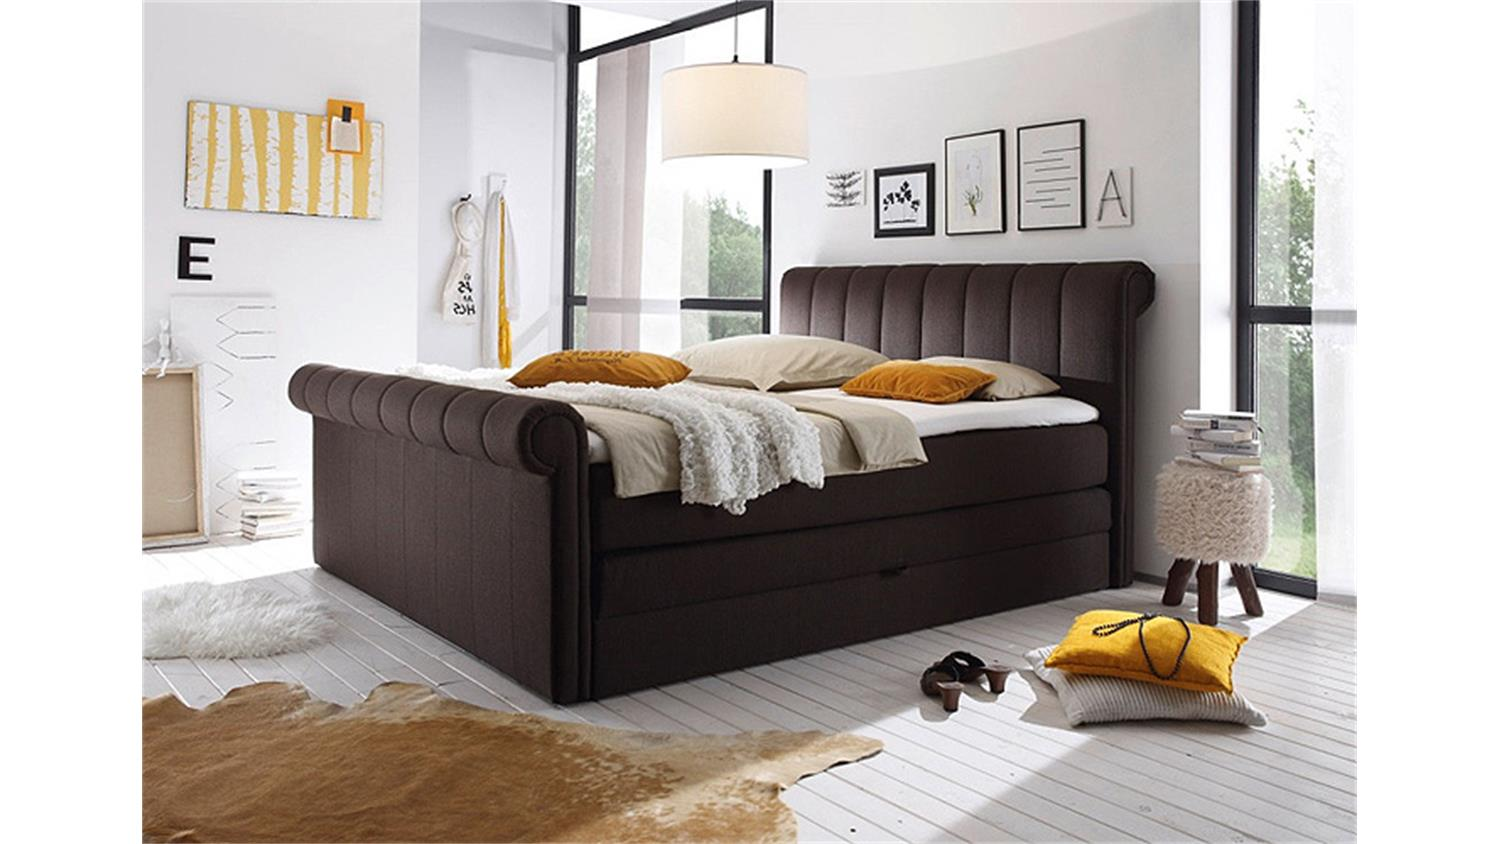 boxspringbett 3 california bett in braun mit topper 180x200. Black Bedroom Furniture Sets. Home Design Ideas